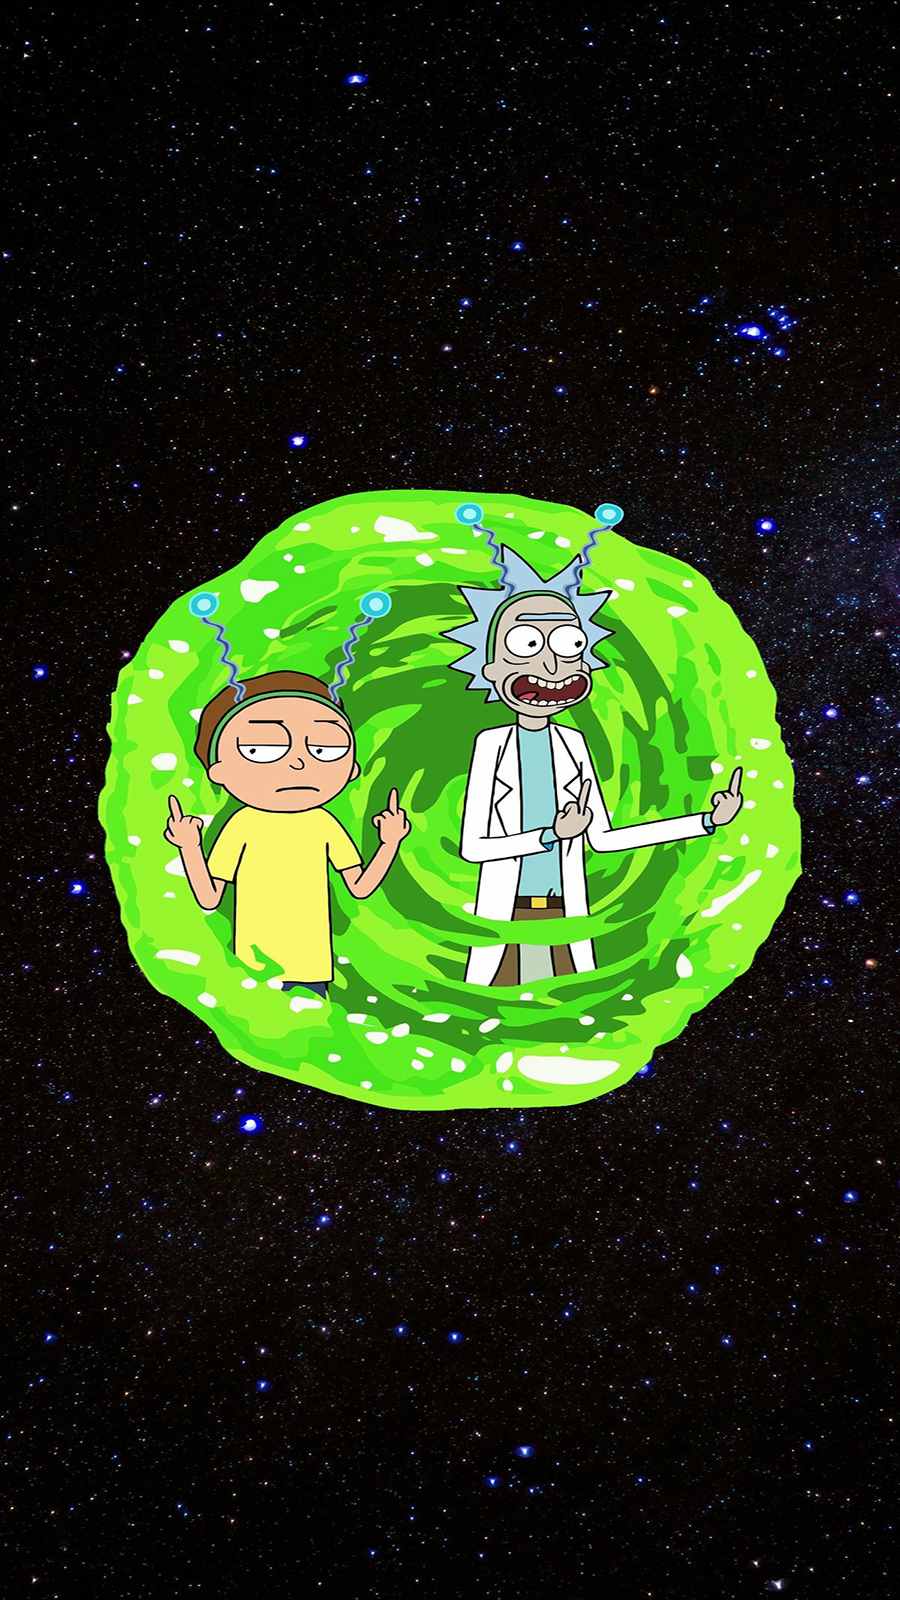 Rick and Morty iPhone Wallpapers – Top Free Rick and Morty Wallpapers